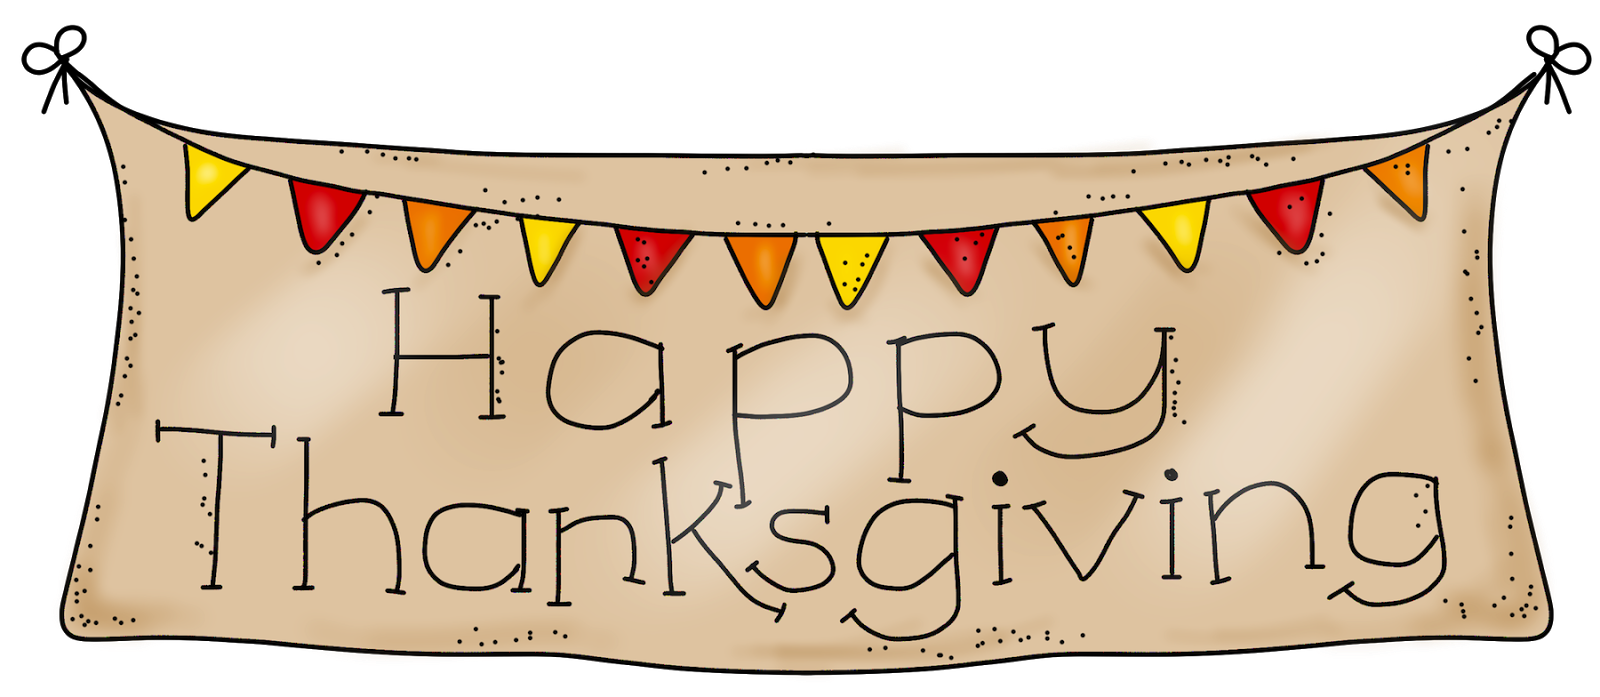 Jenna pritchard holistic nutritionist. Luncheon clipart thanksgiving